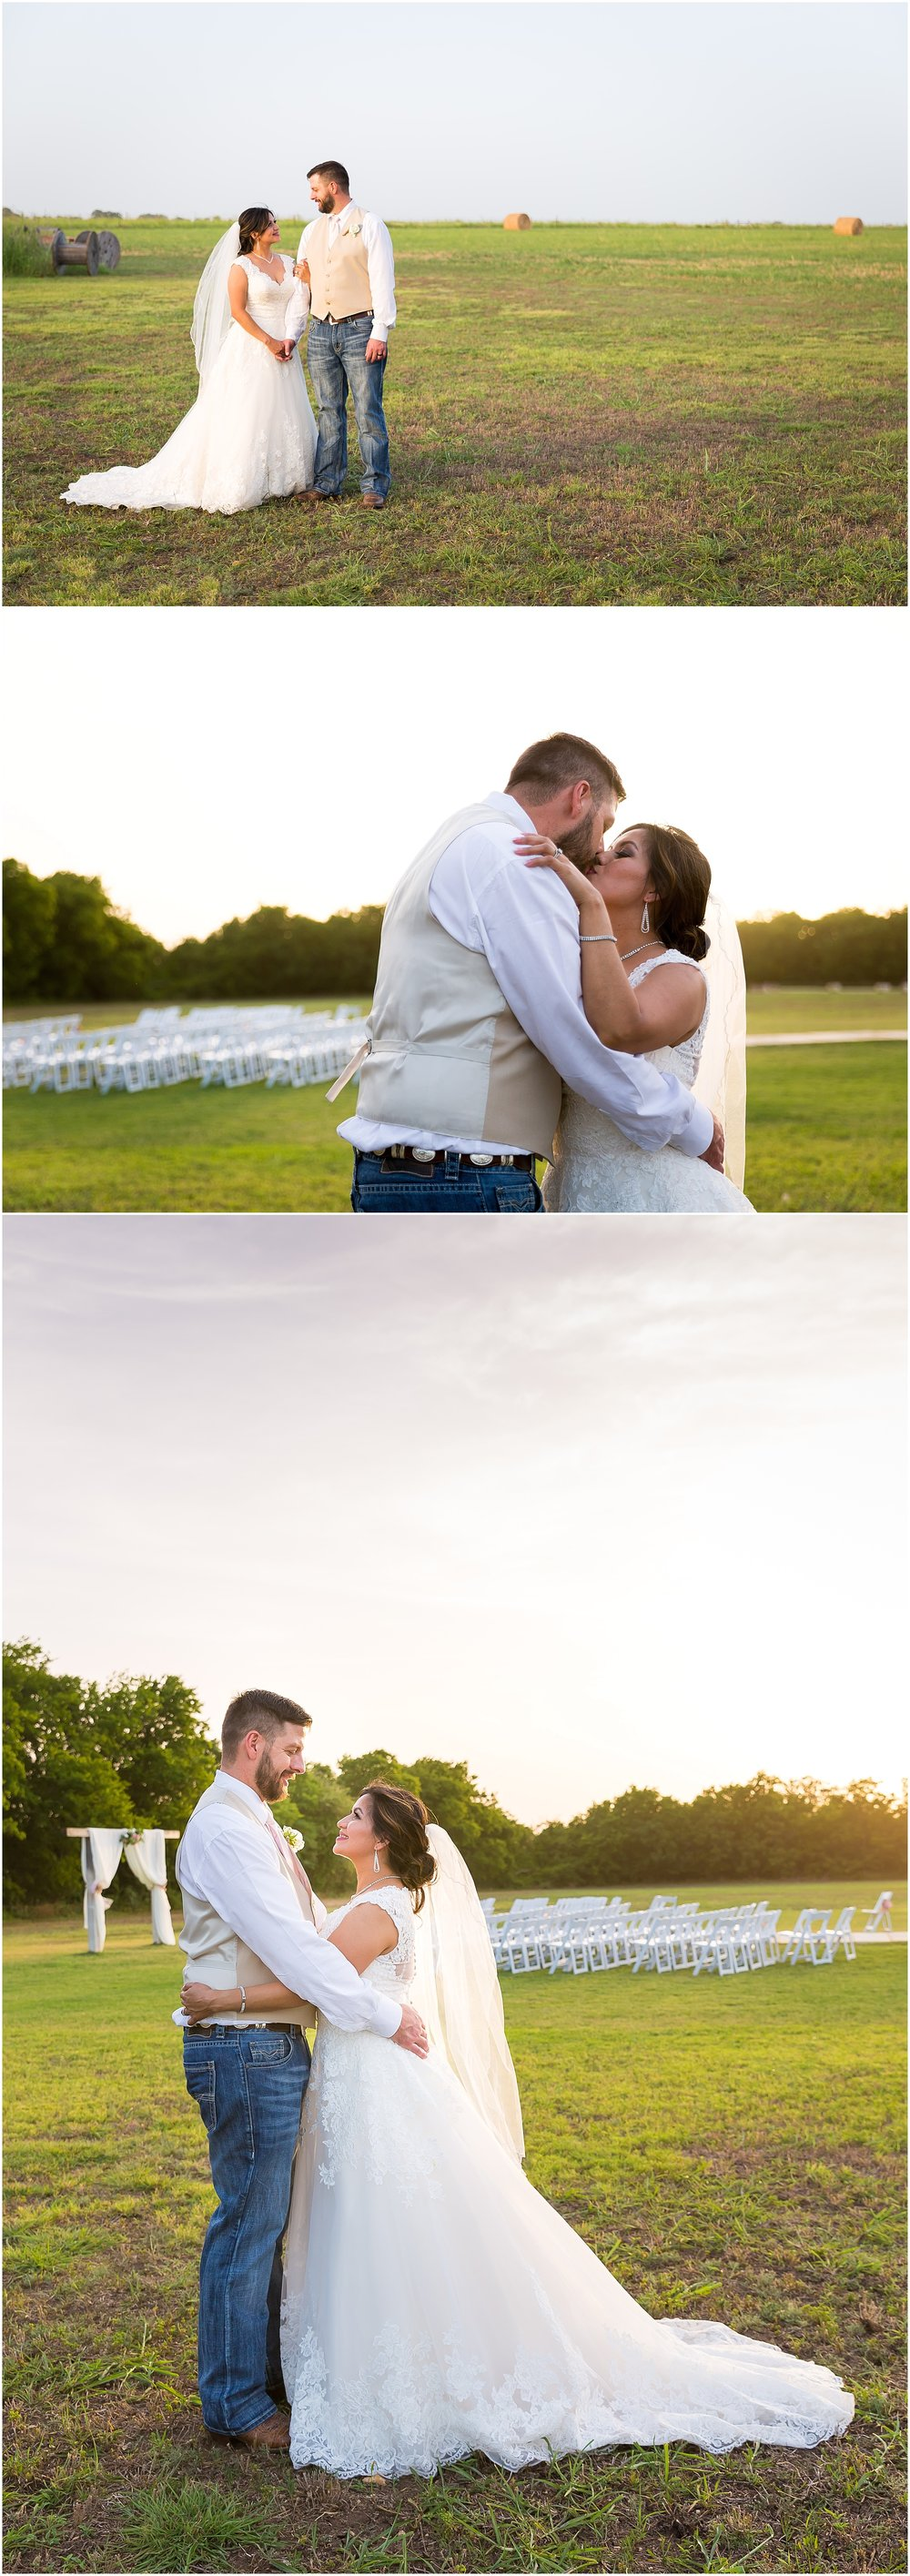 A couple embraces in a field with a Texas sunset behind them after their wedding ceremony in Belton, Texas - Jason & Melaina Photography - www.jasonandmelaina.com